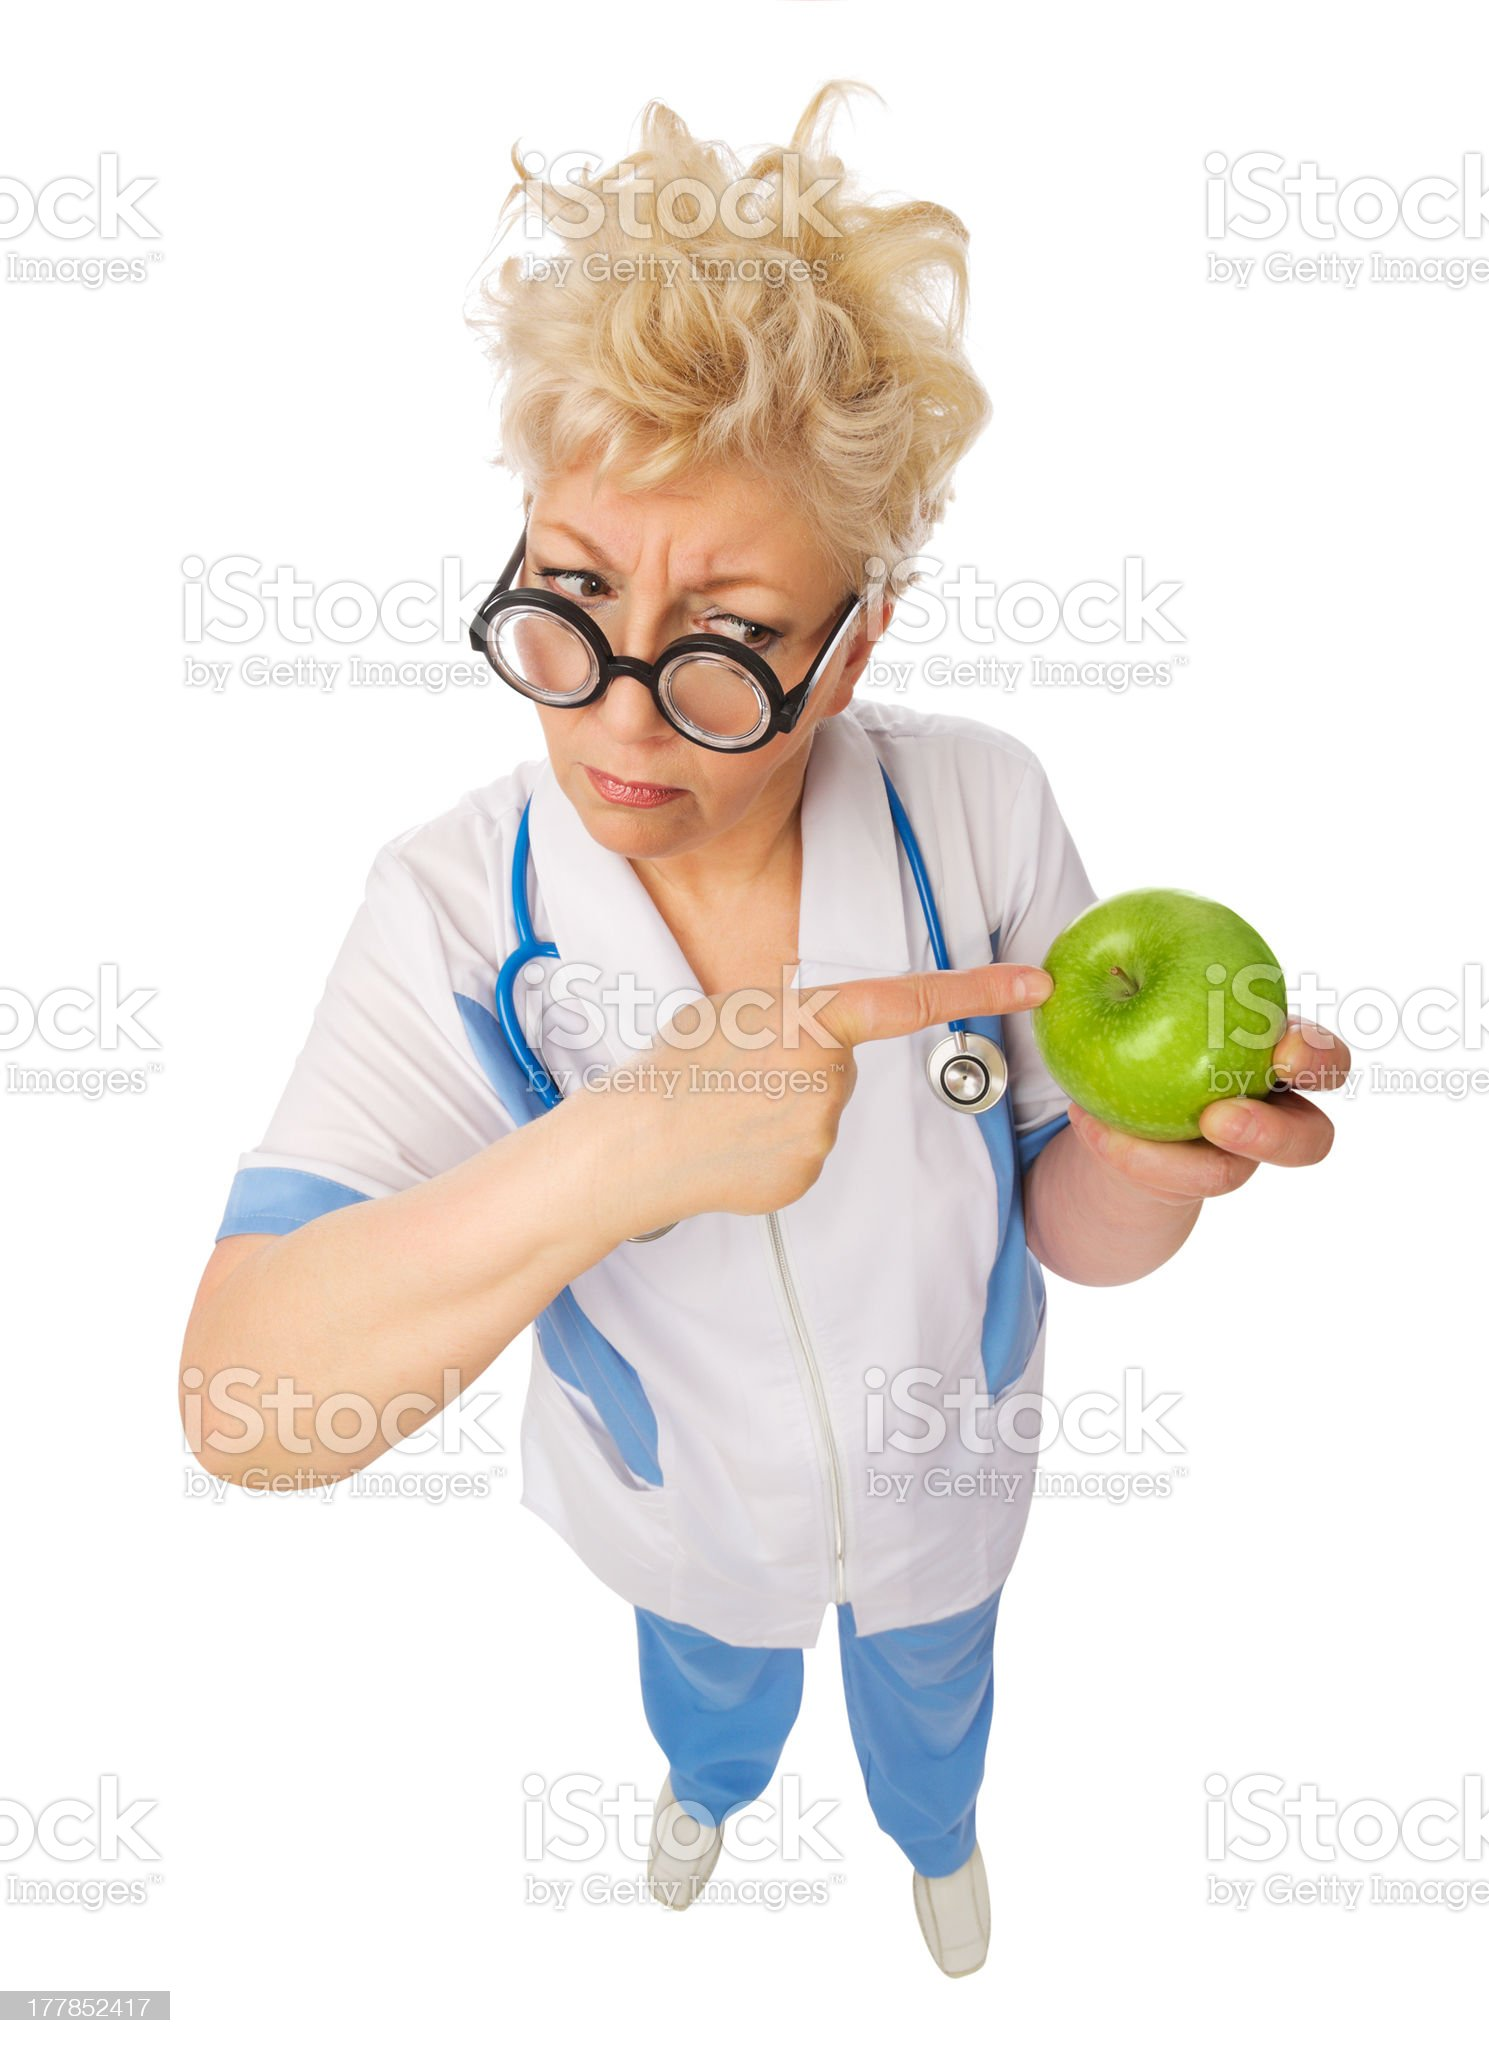 Funny mature doctor with apple royalty-free stock photo